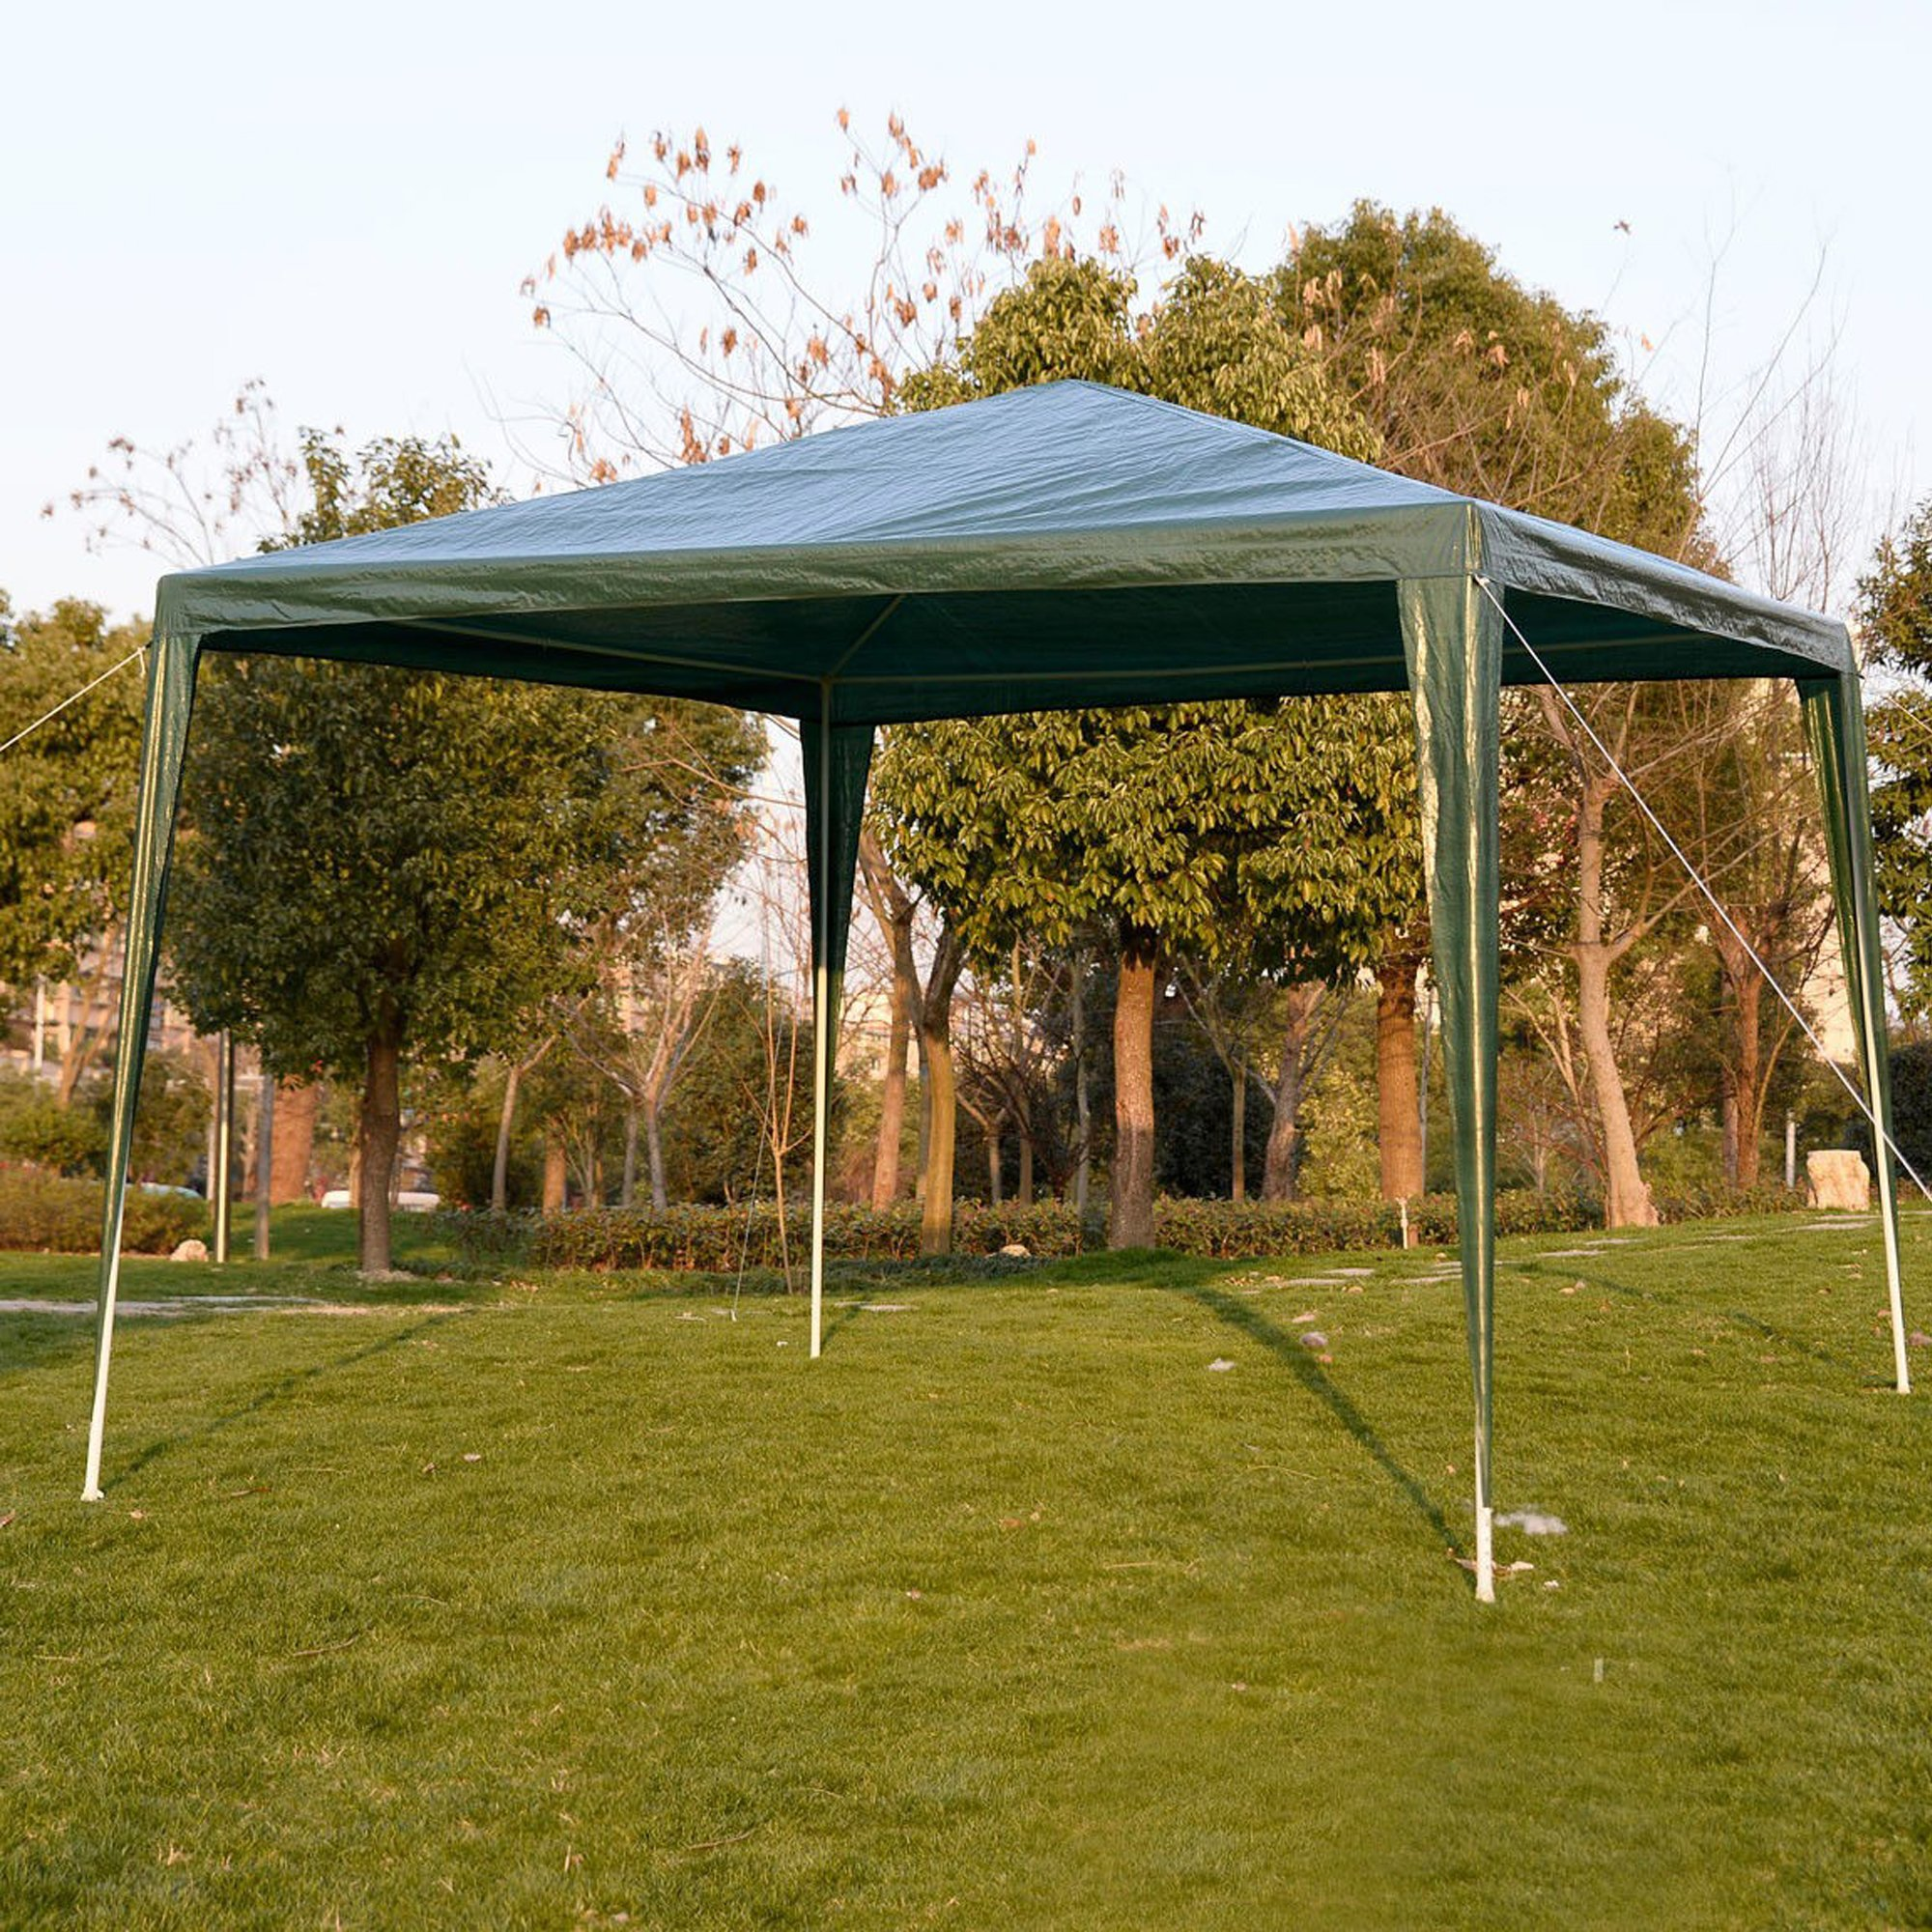 Canopy Tent Wedding Party Gazebo - Outdoor Portable Sun Shade Shelter For Cater Events Garage Yard Sales Flea Markets Trade Shows - Waterproof Pavilion for Backyard Patio Camping Picnics - 10 x 10 Ft